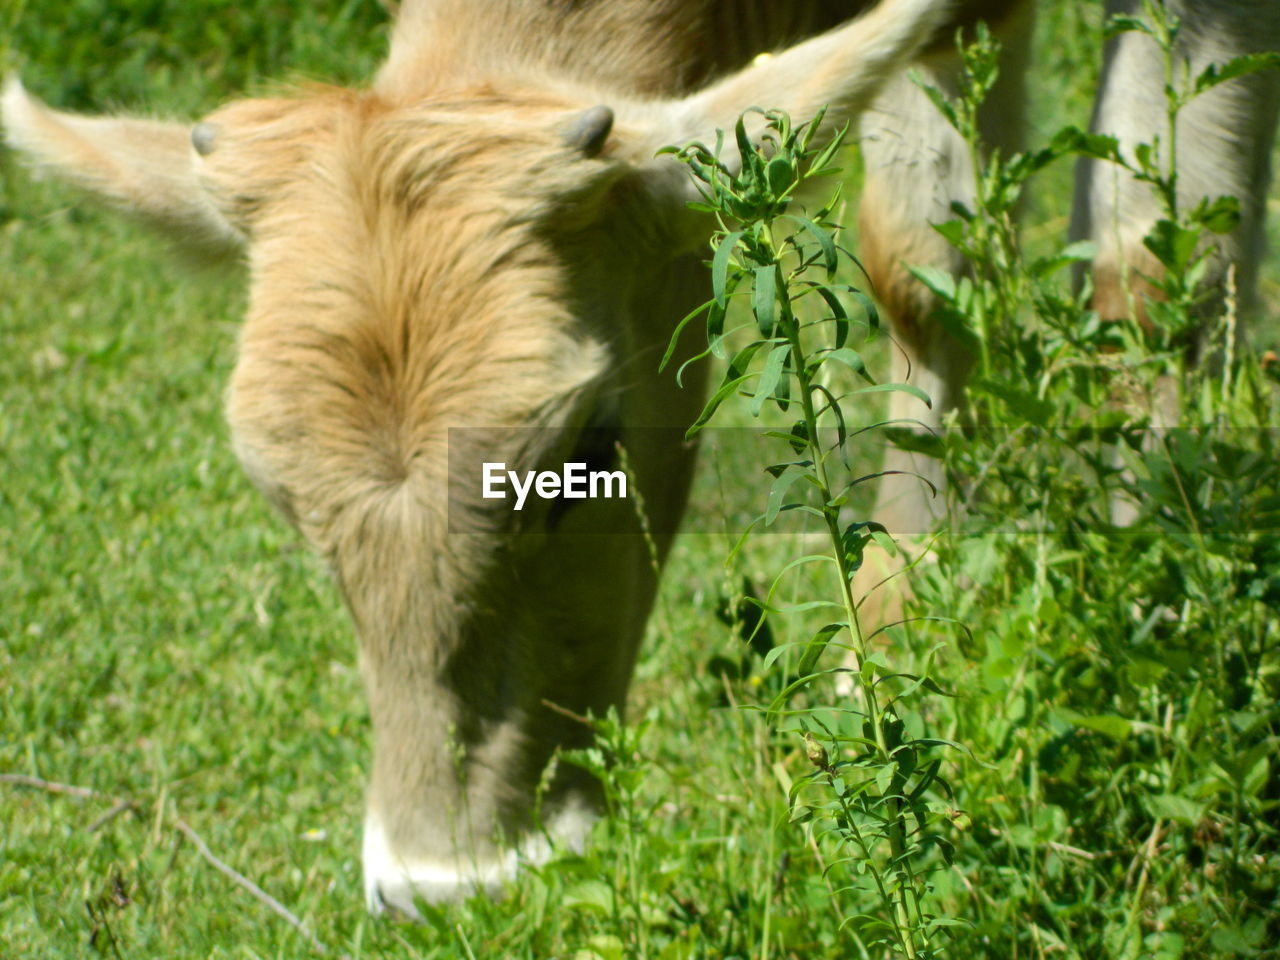 Close-up of cow grazing on grassy field